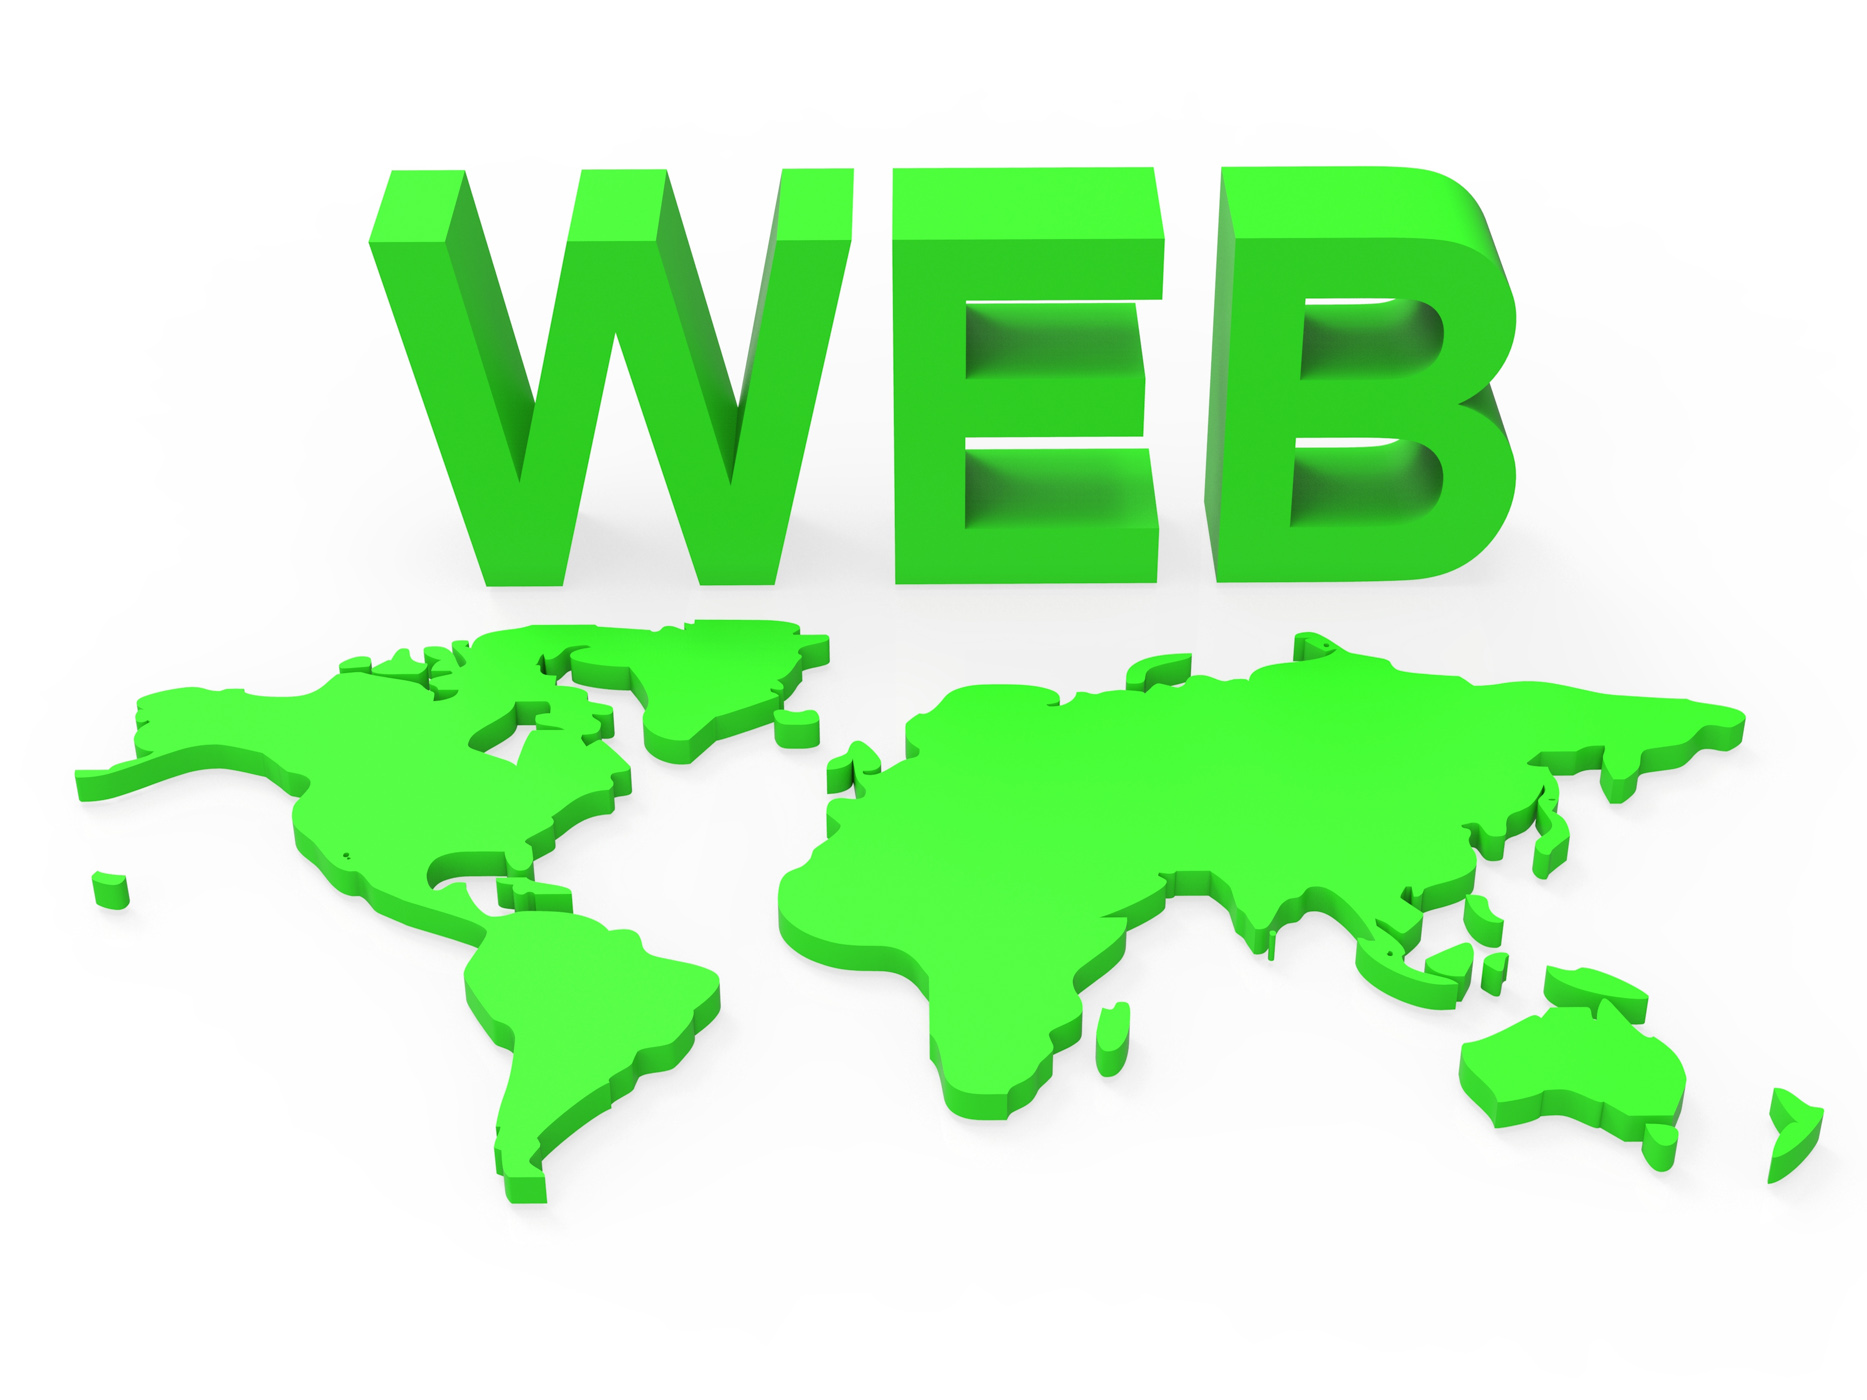 Web world represents globalisation www and website photo